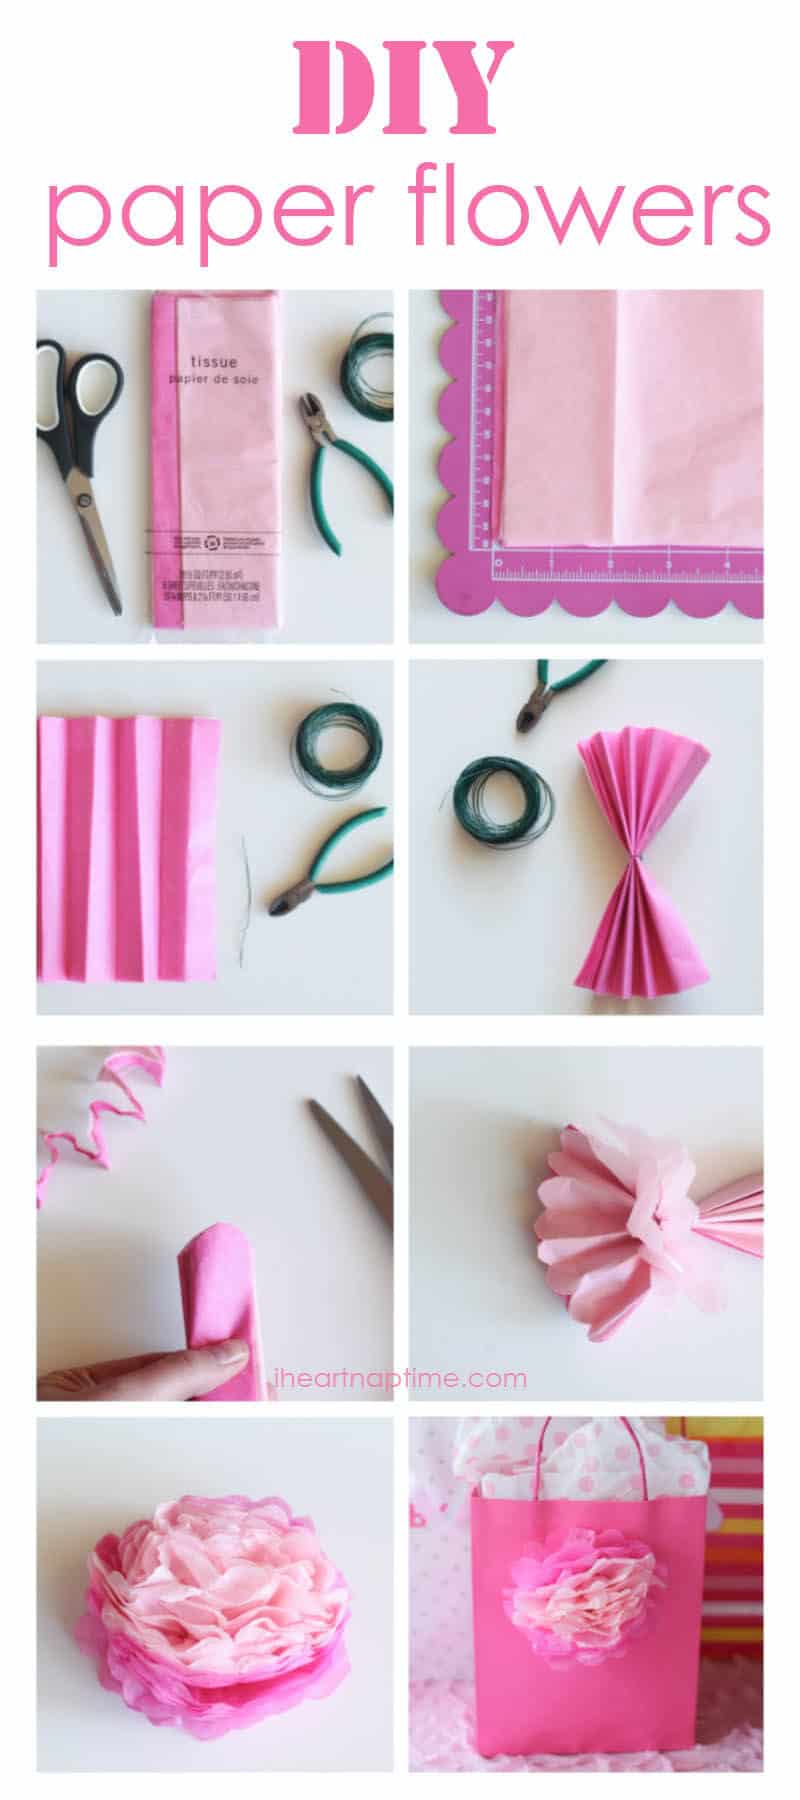 How to make tissue paper flowers i heart nap time how to make tissue paper flowers mightylinksfo